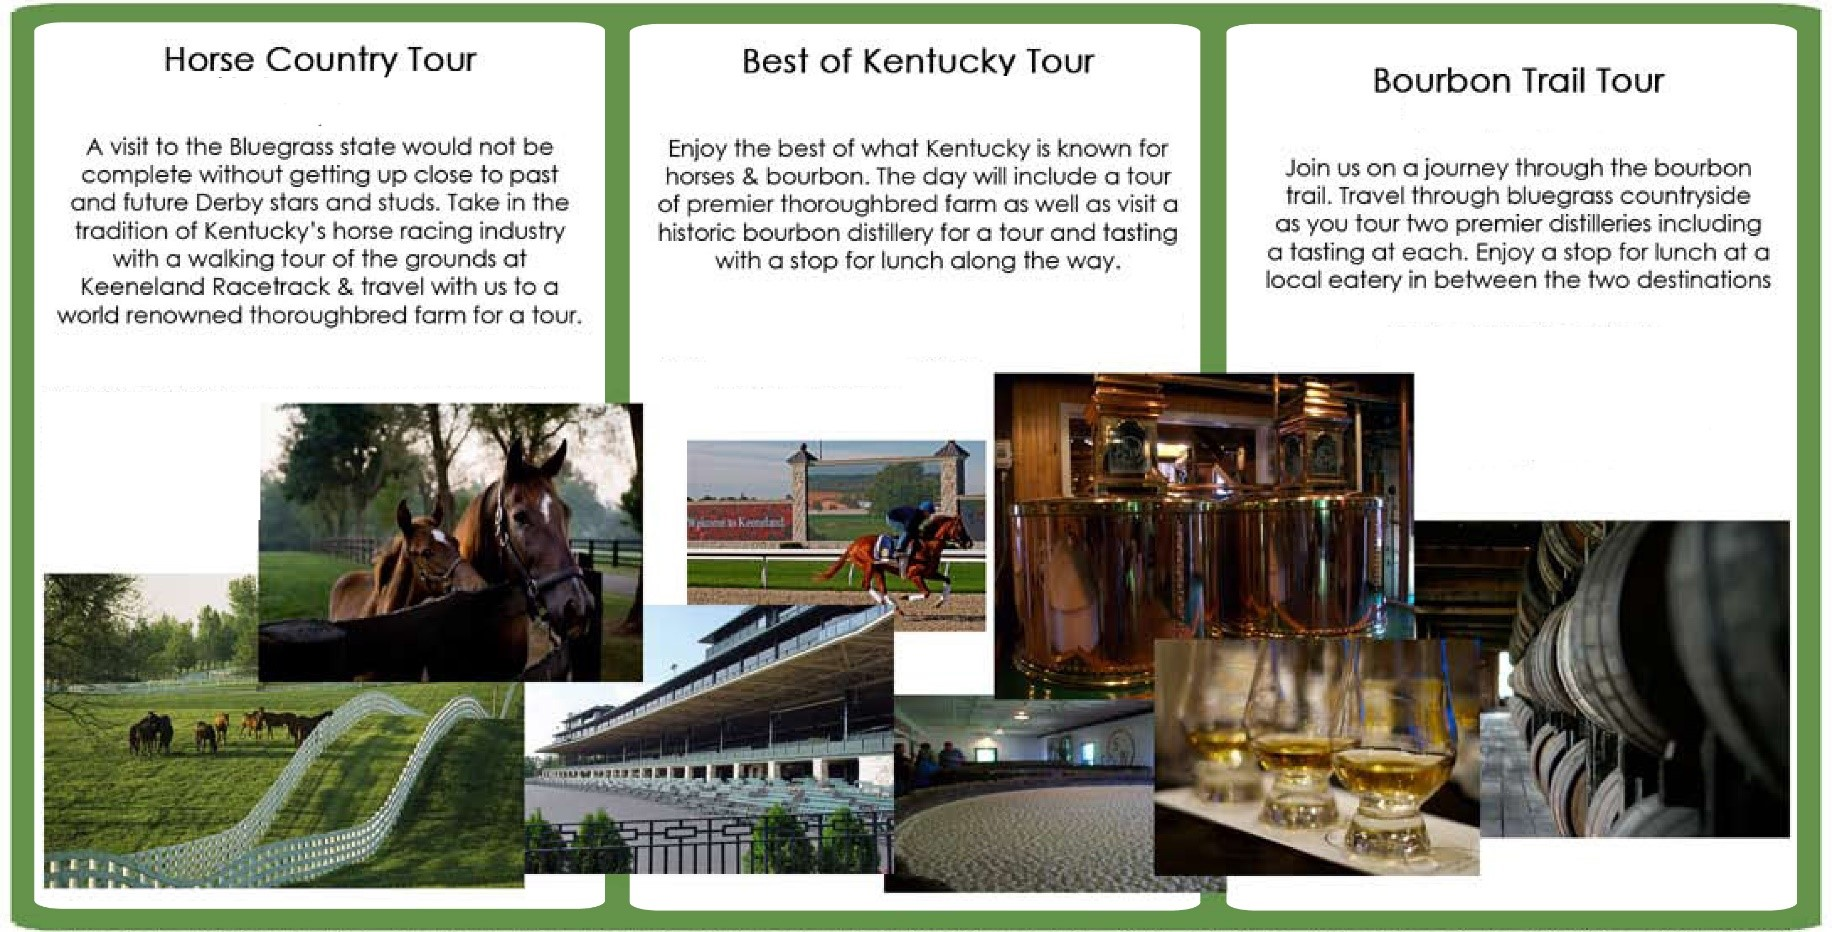 Kentucky Derby hotels downtown and best deals.  WHERE TO STAY, ACCOMMODATIONS for Kentucky Derby Hotels